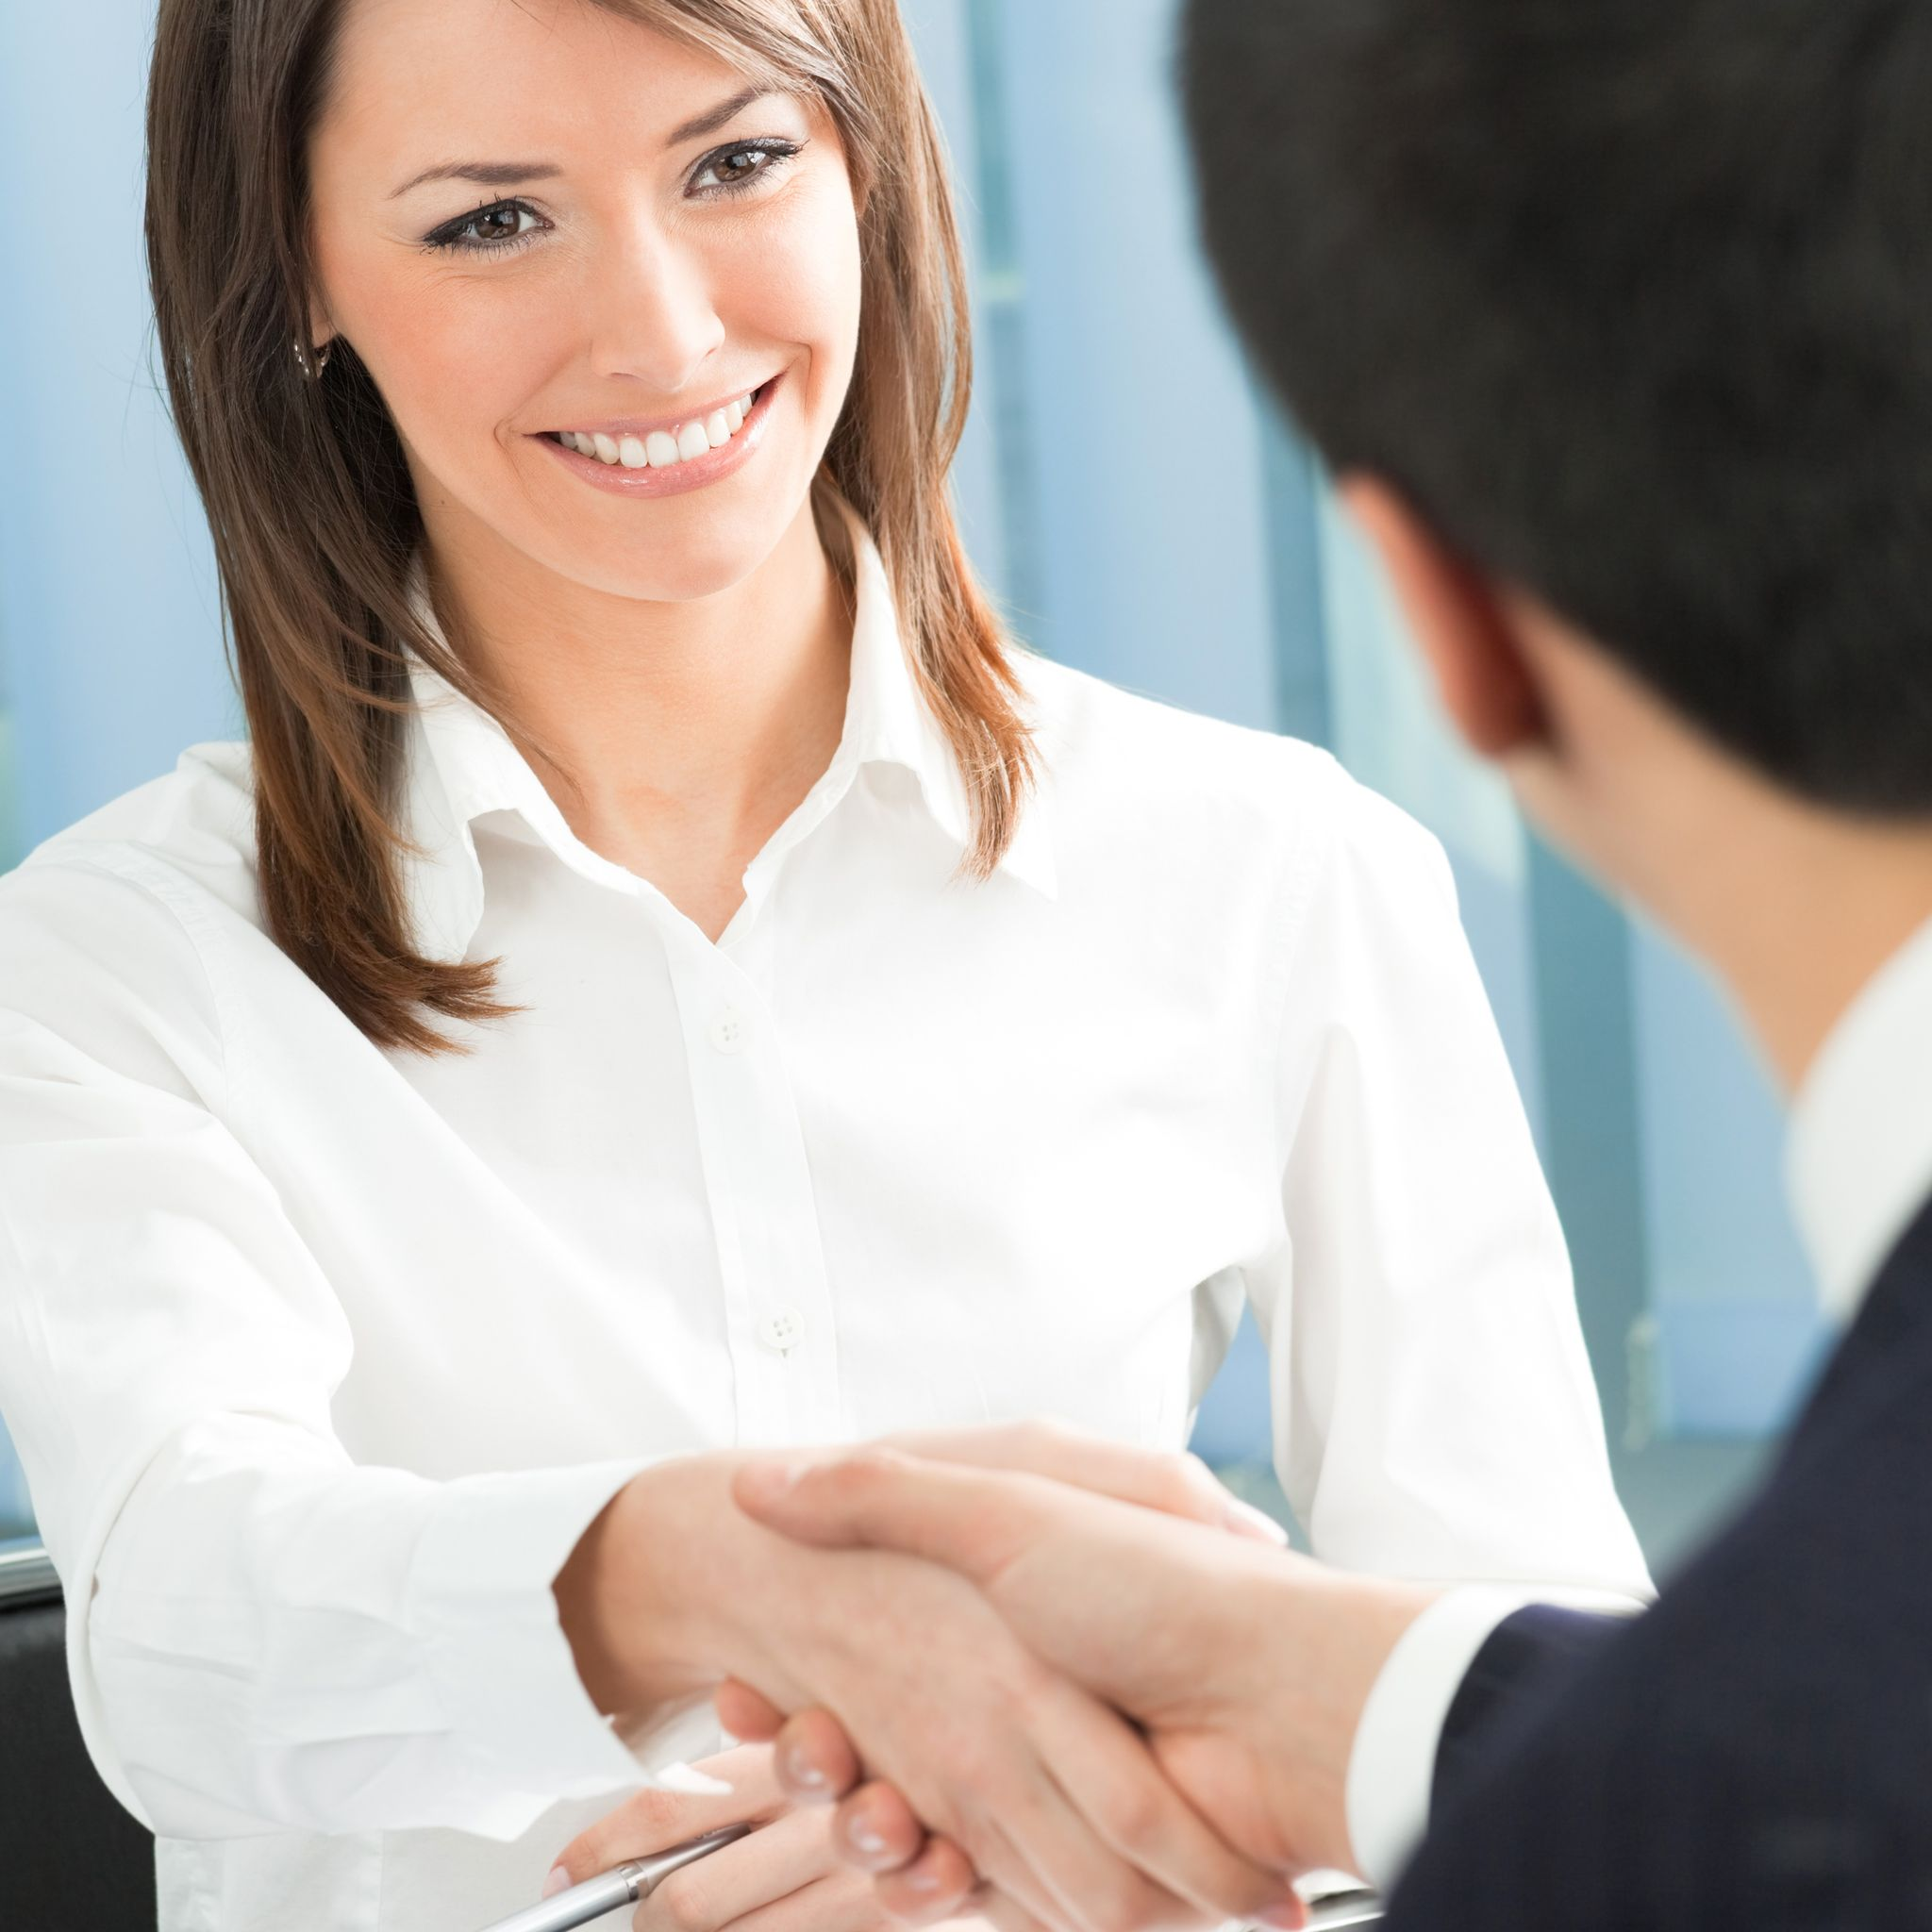 law firm client referrals from your professional network